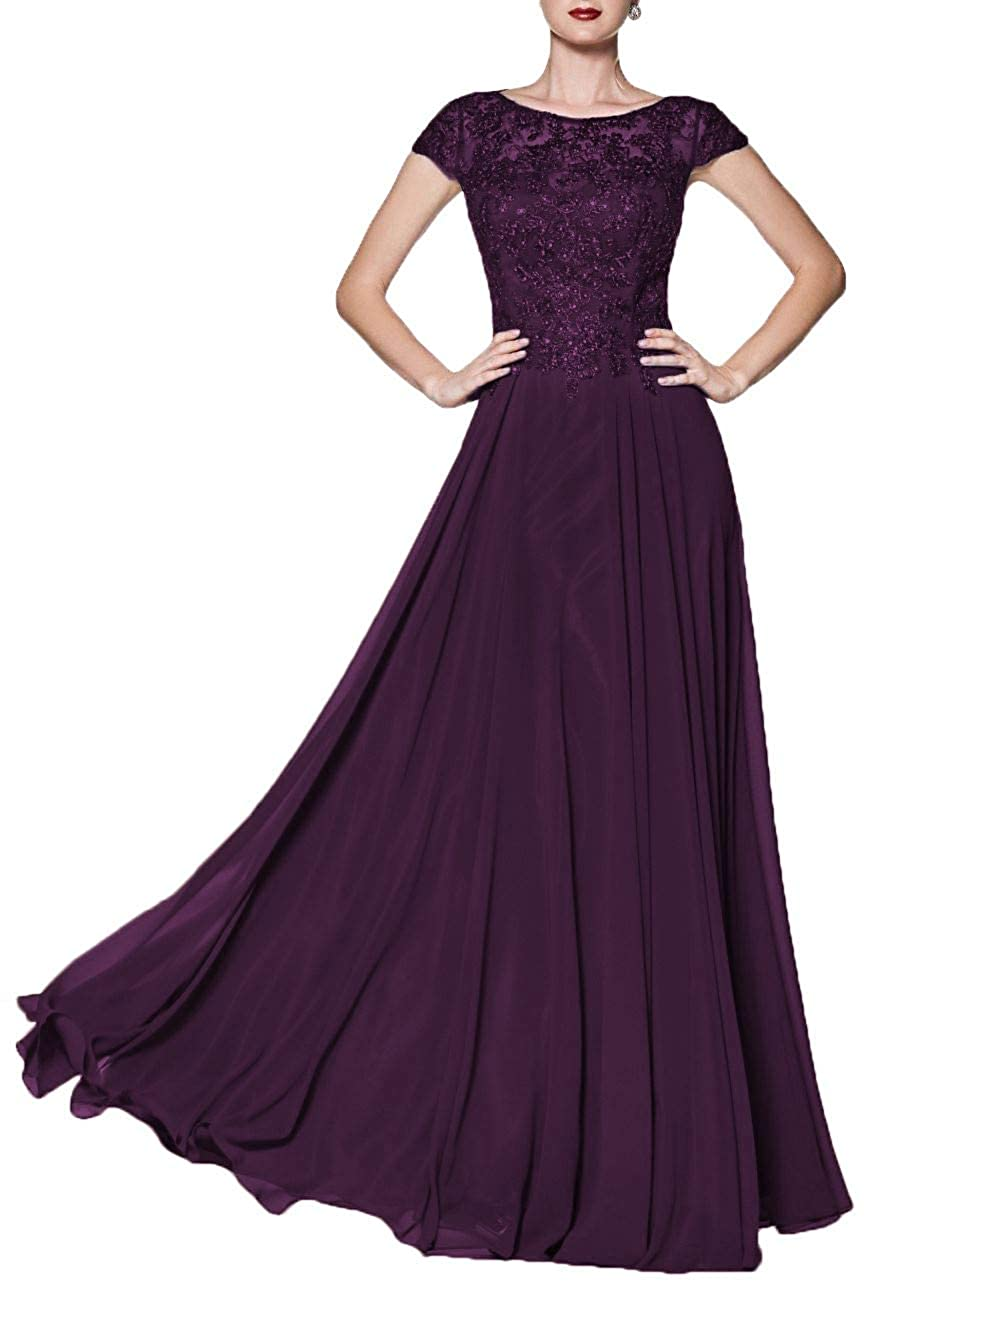 Dark Purple Wanshaqin Women's Illusion Neckline Jeweled Waist Long Evening Gown Prom Formal Dress Bridesmaid Gown